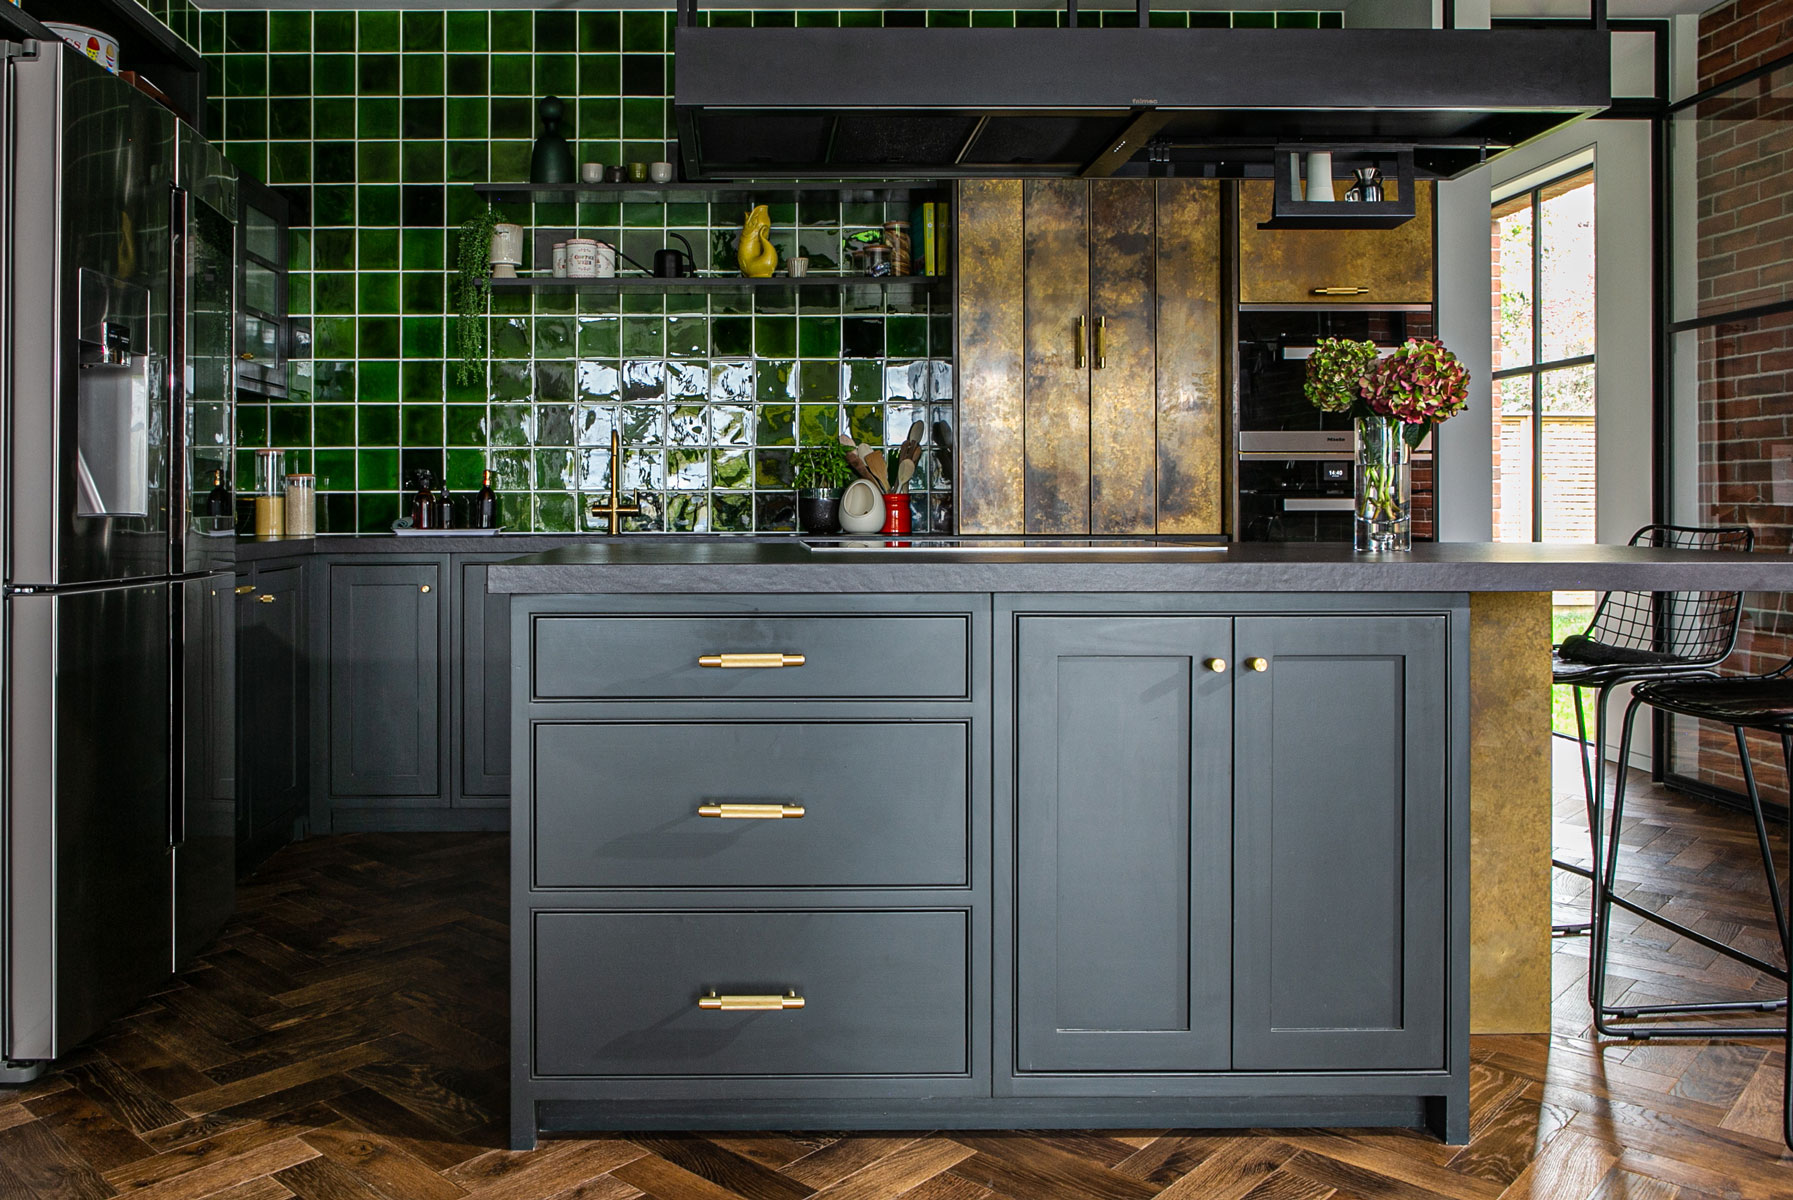 Bespoke kitchen island with painted cabinets and buster punch brass handles